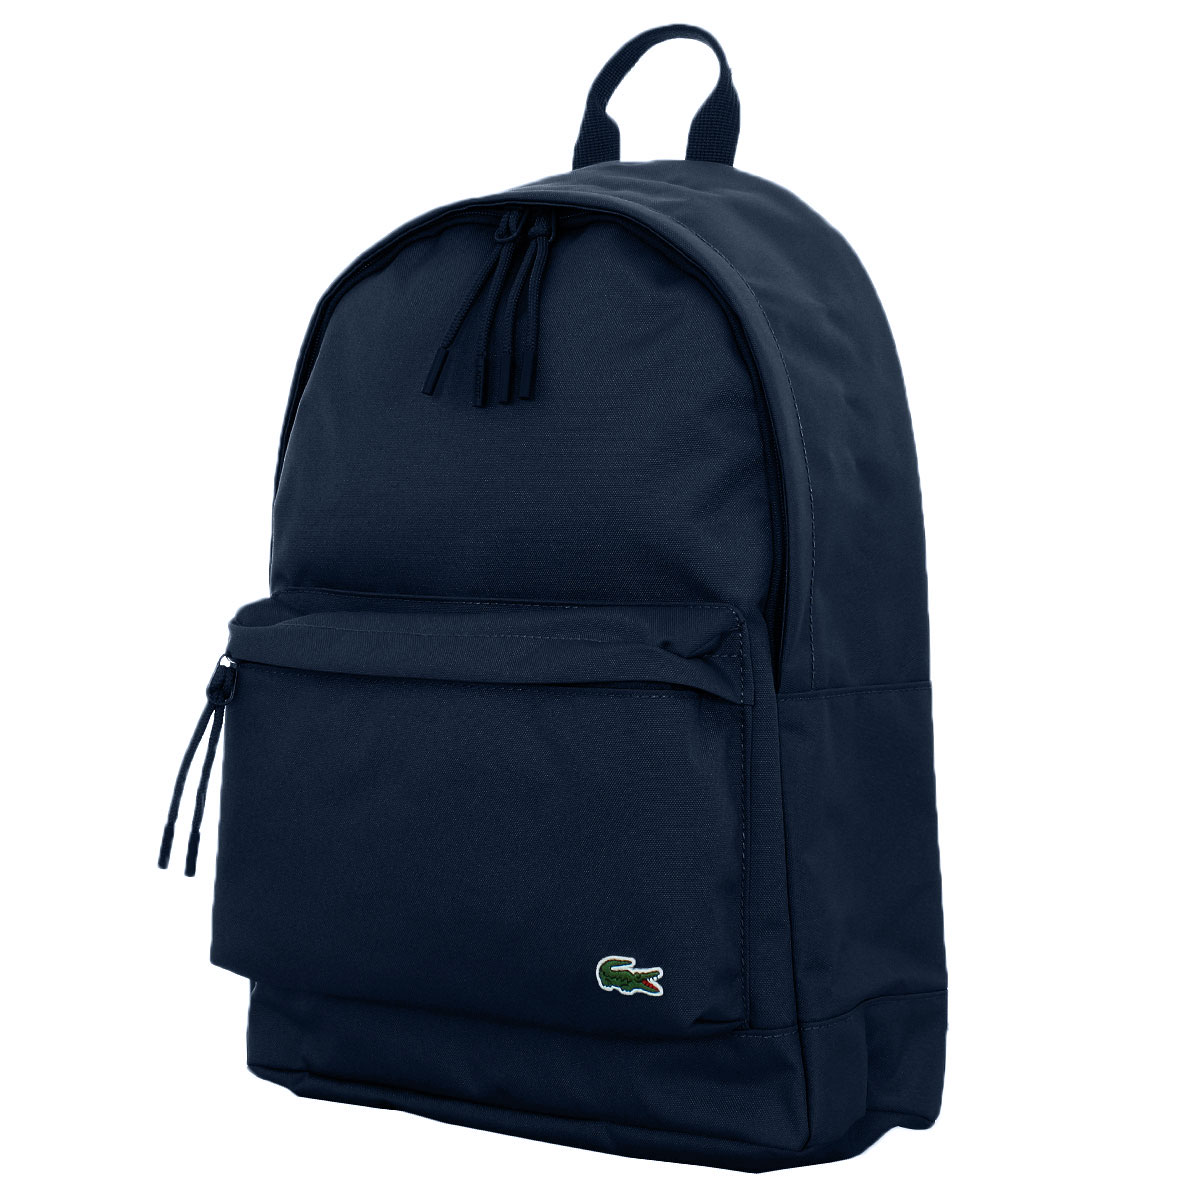 Carry Your School Equipment in Style with a Backpack from Paperchase - Gorgeous Designs & Free UK Delivery over £